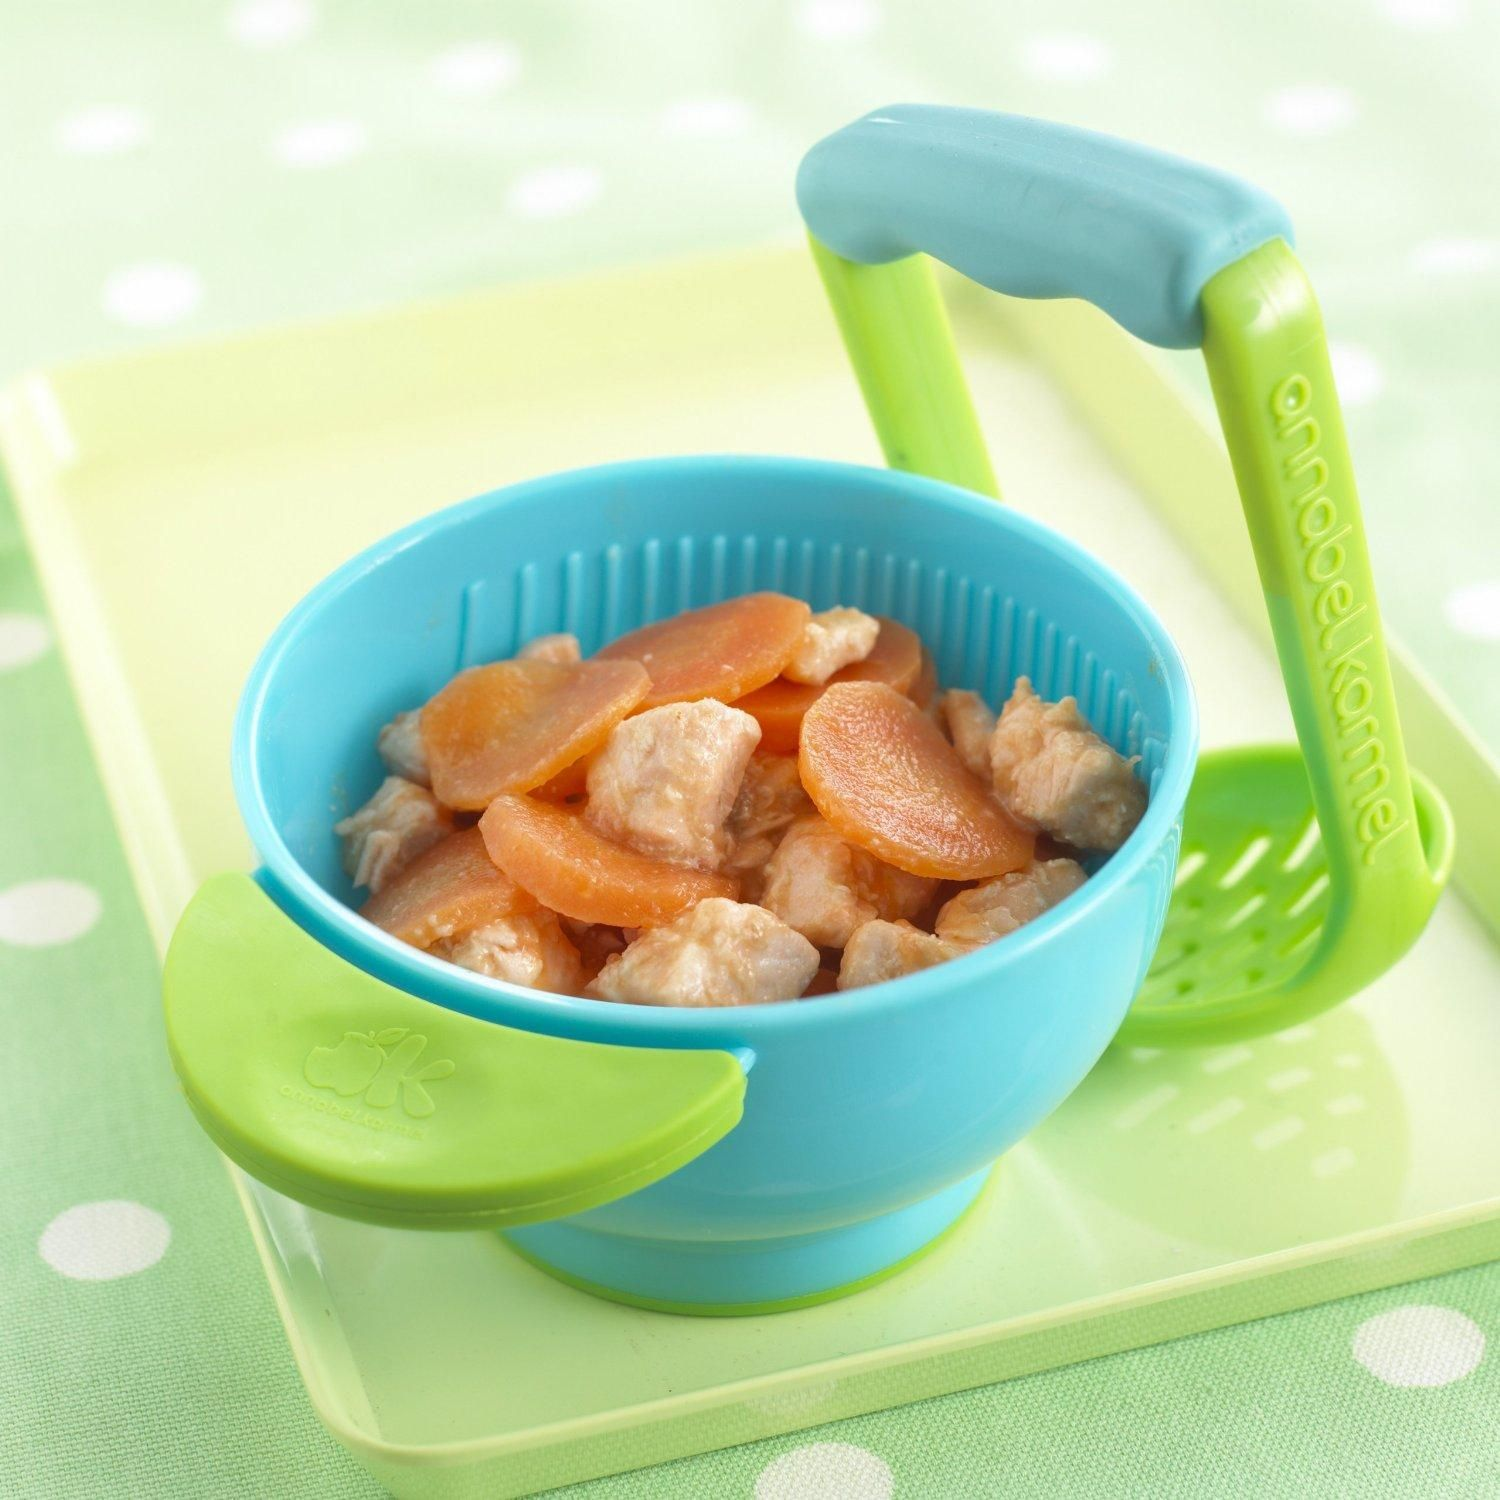 Amazon.com : NUK Mash and Serve Bowl for Making Homemade Baby Food : Baby Dinnerware Sets : Baby